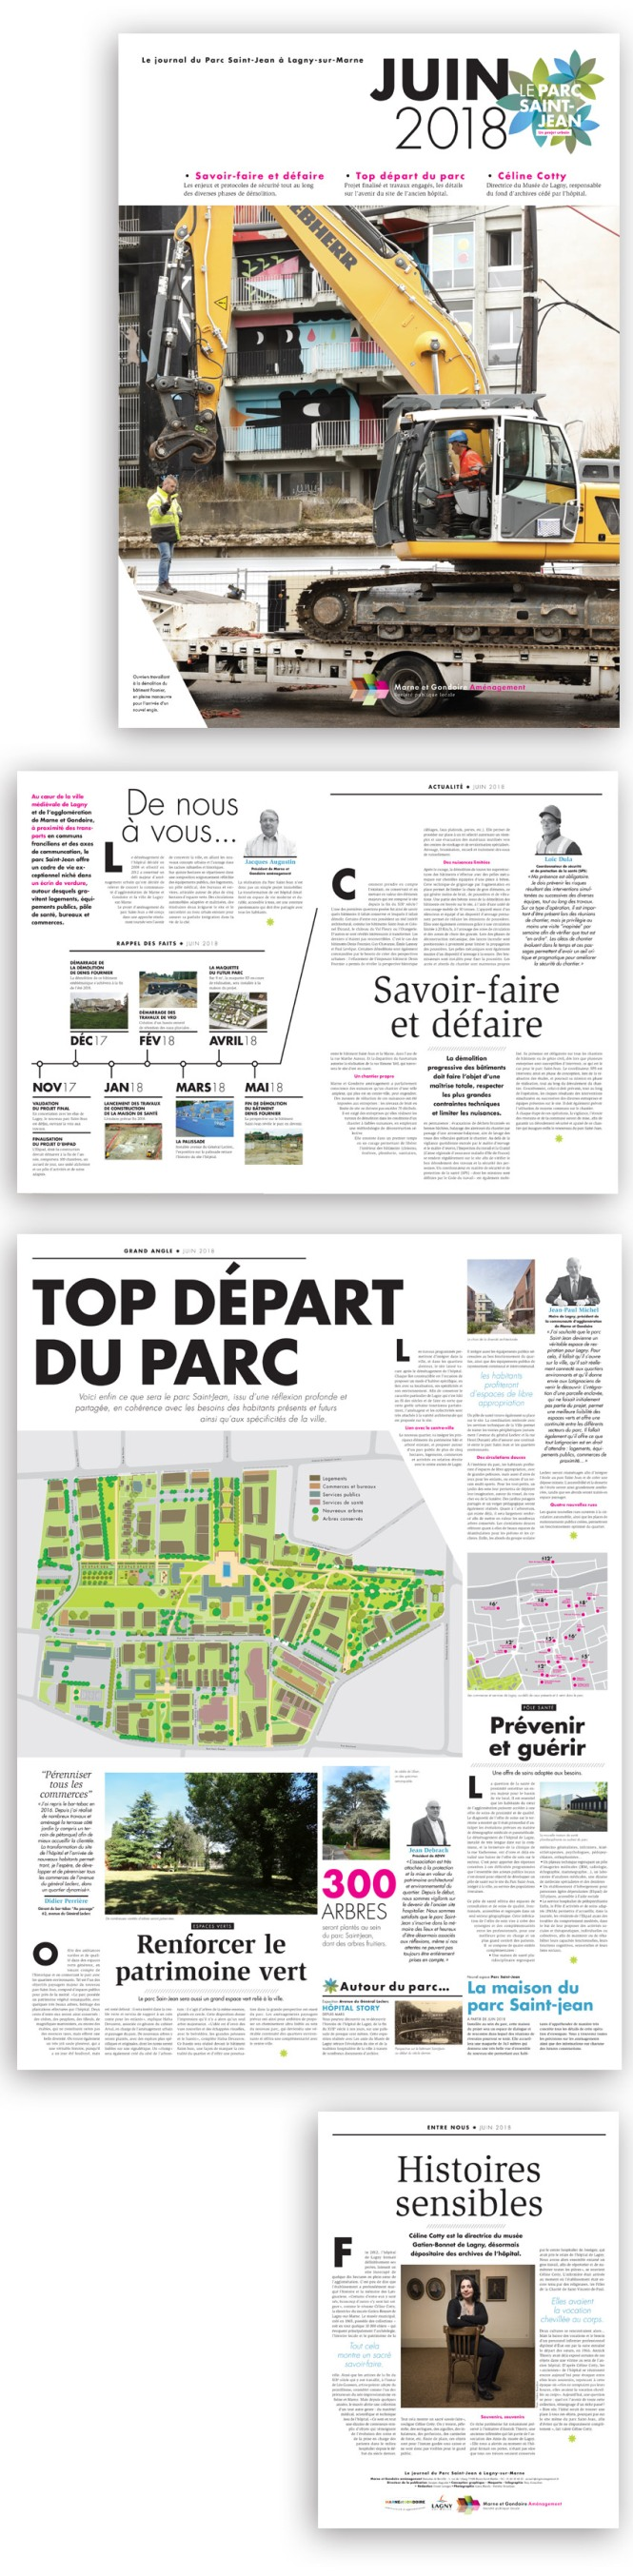 Journal du parc Saint-Jean Lagny